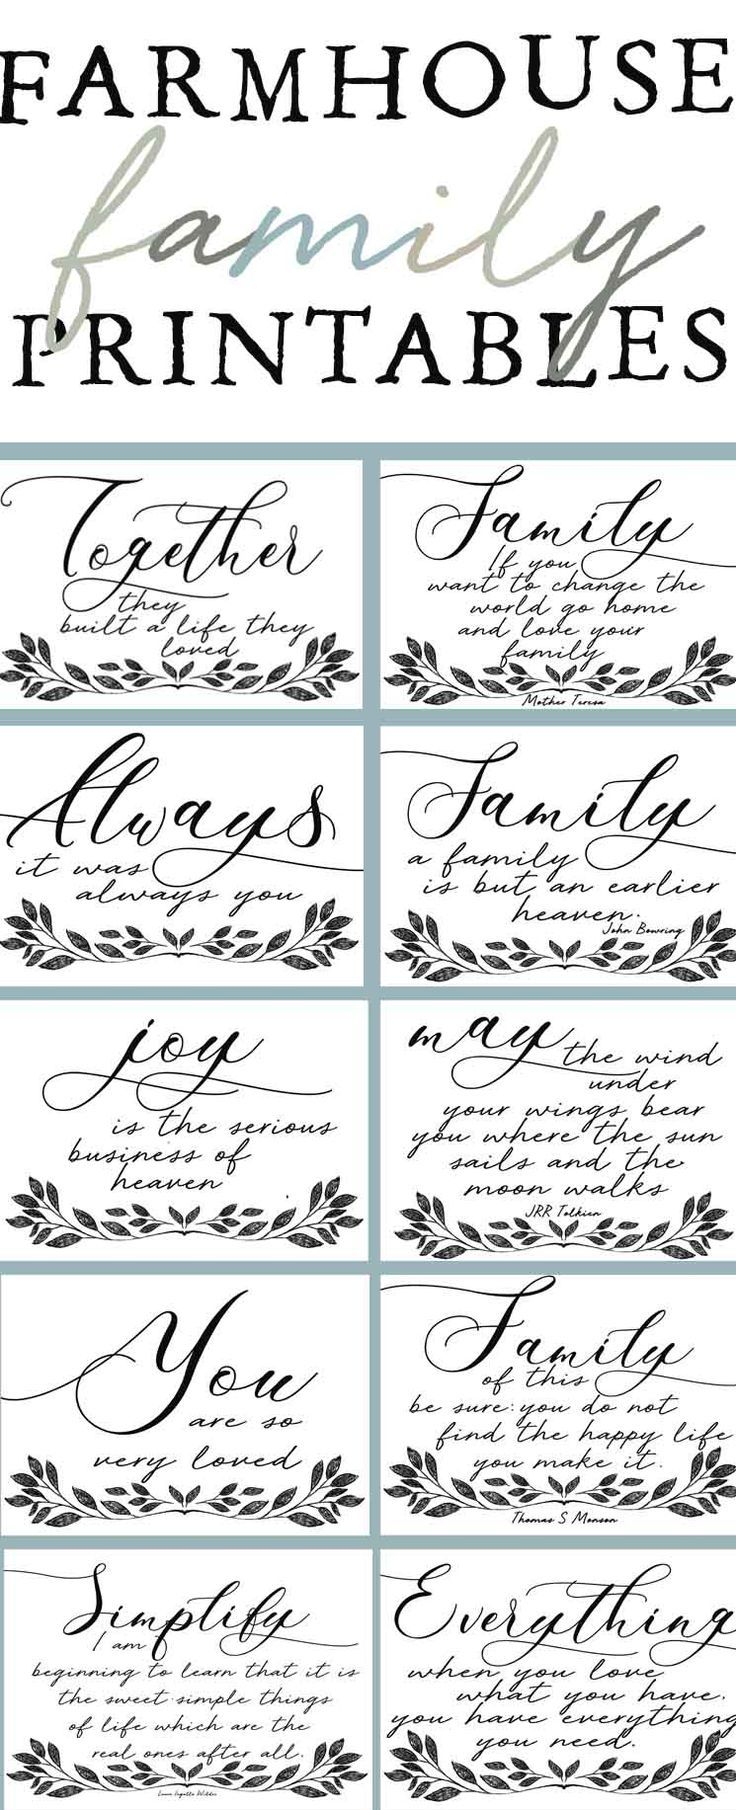 Farmhouse Family Printable S Family Quotes Home Quotes